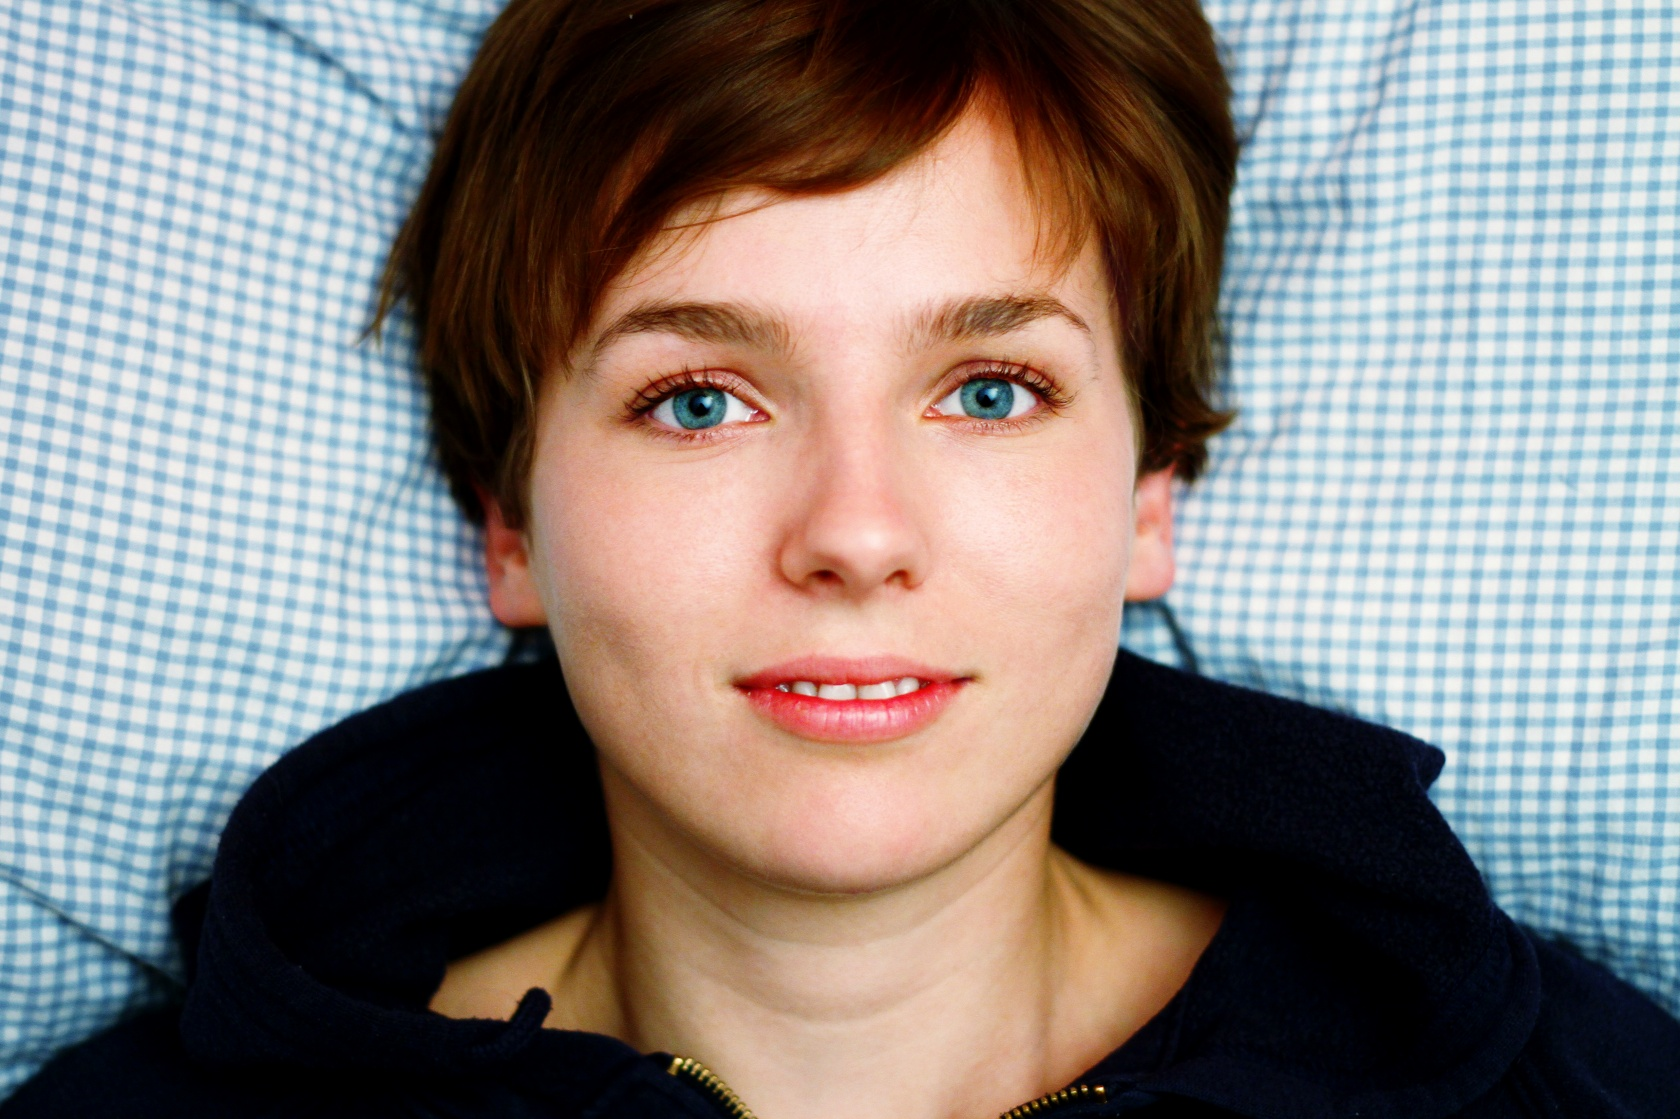 Foto: Lotta Pillow Portrait